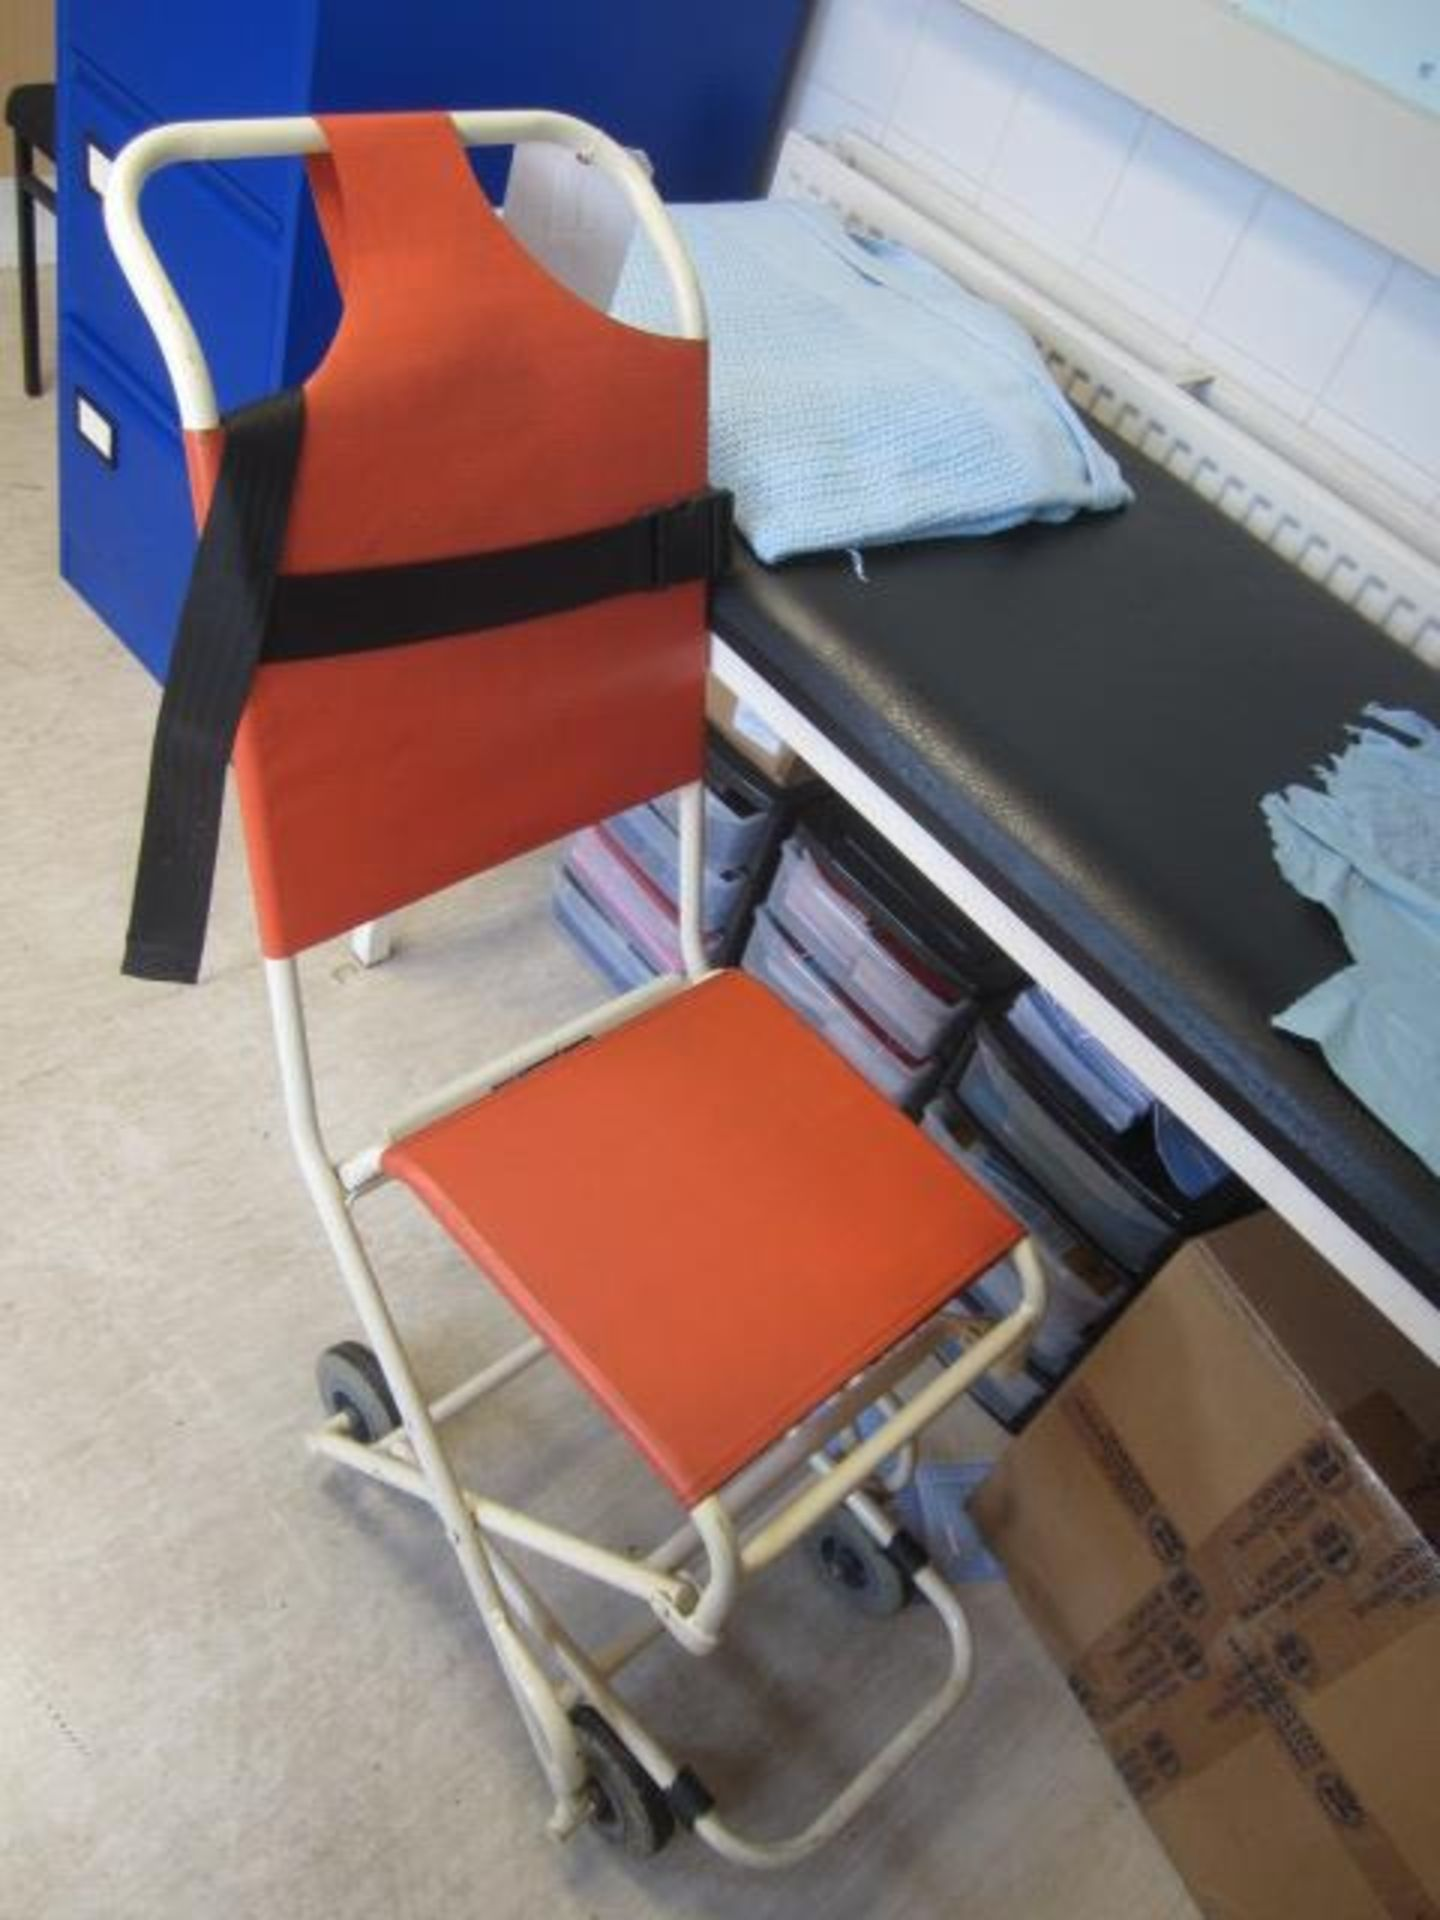 Ferno collapsible patient chair, First Aid bed, multi drawer mobile storage unit, magnifier - Image 2 of 2